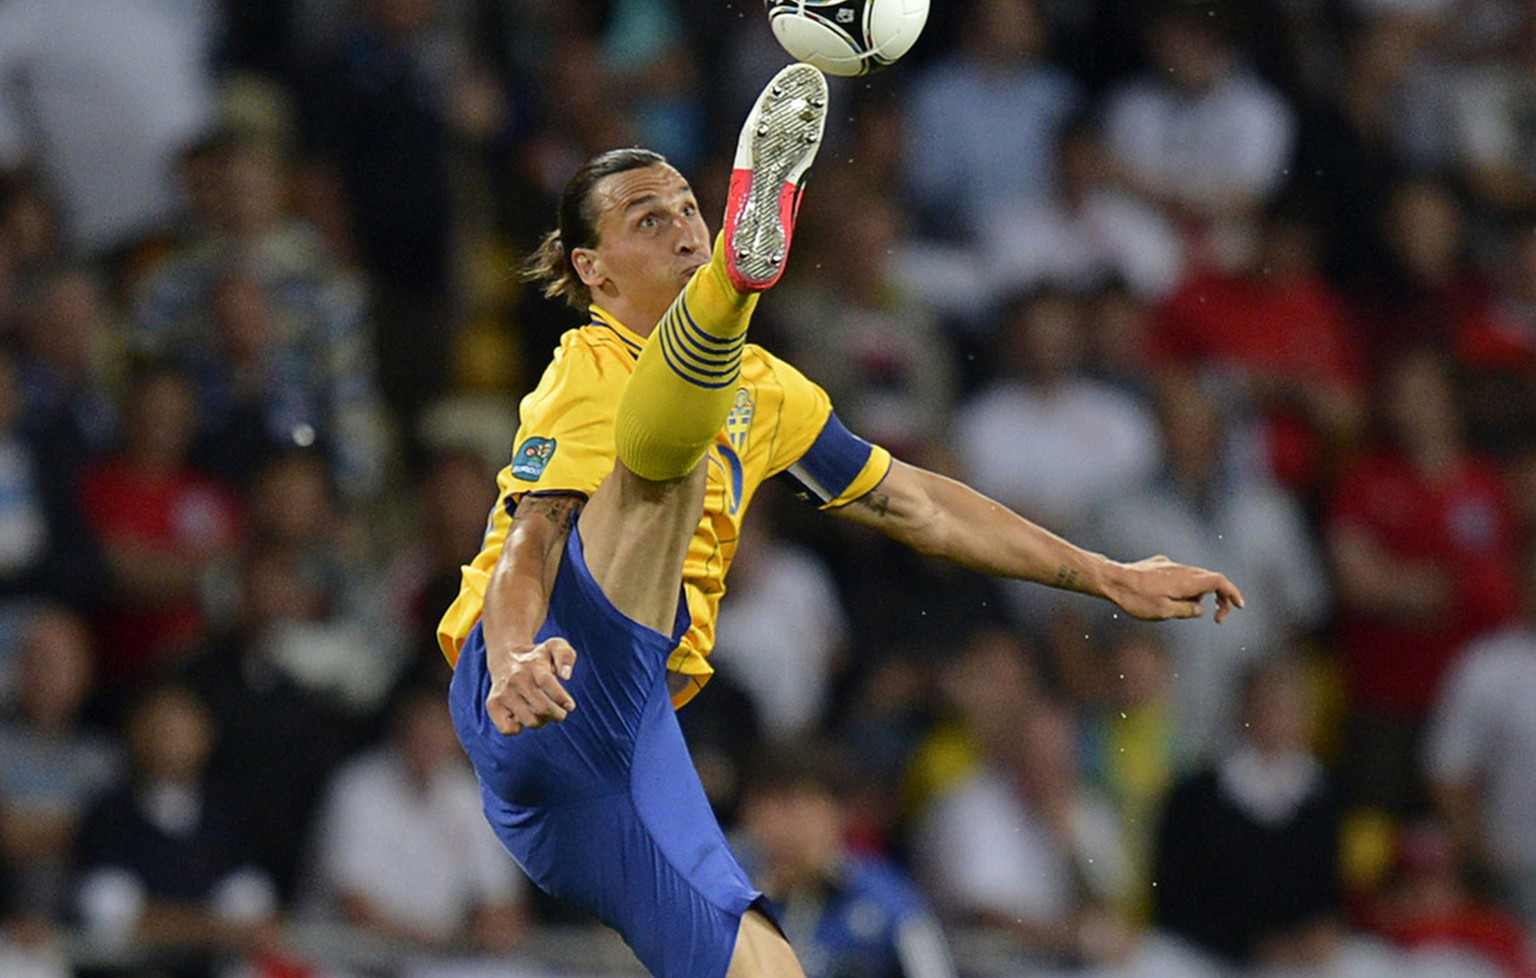 Sweden's Zlatan Ibrahimovic tries to stop the ball during the Euro 2012 soccer championship Group D match between Sweden and England in Kiev, Ukraine, Friday, June 15, 2012. (AP Photo/Martin Meissner)